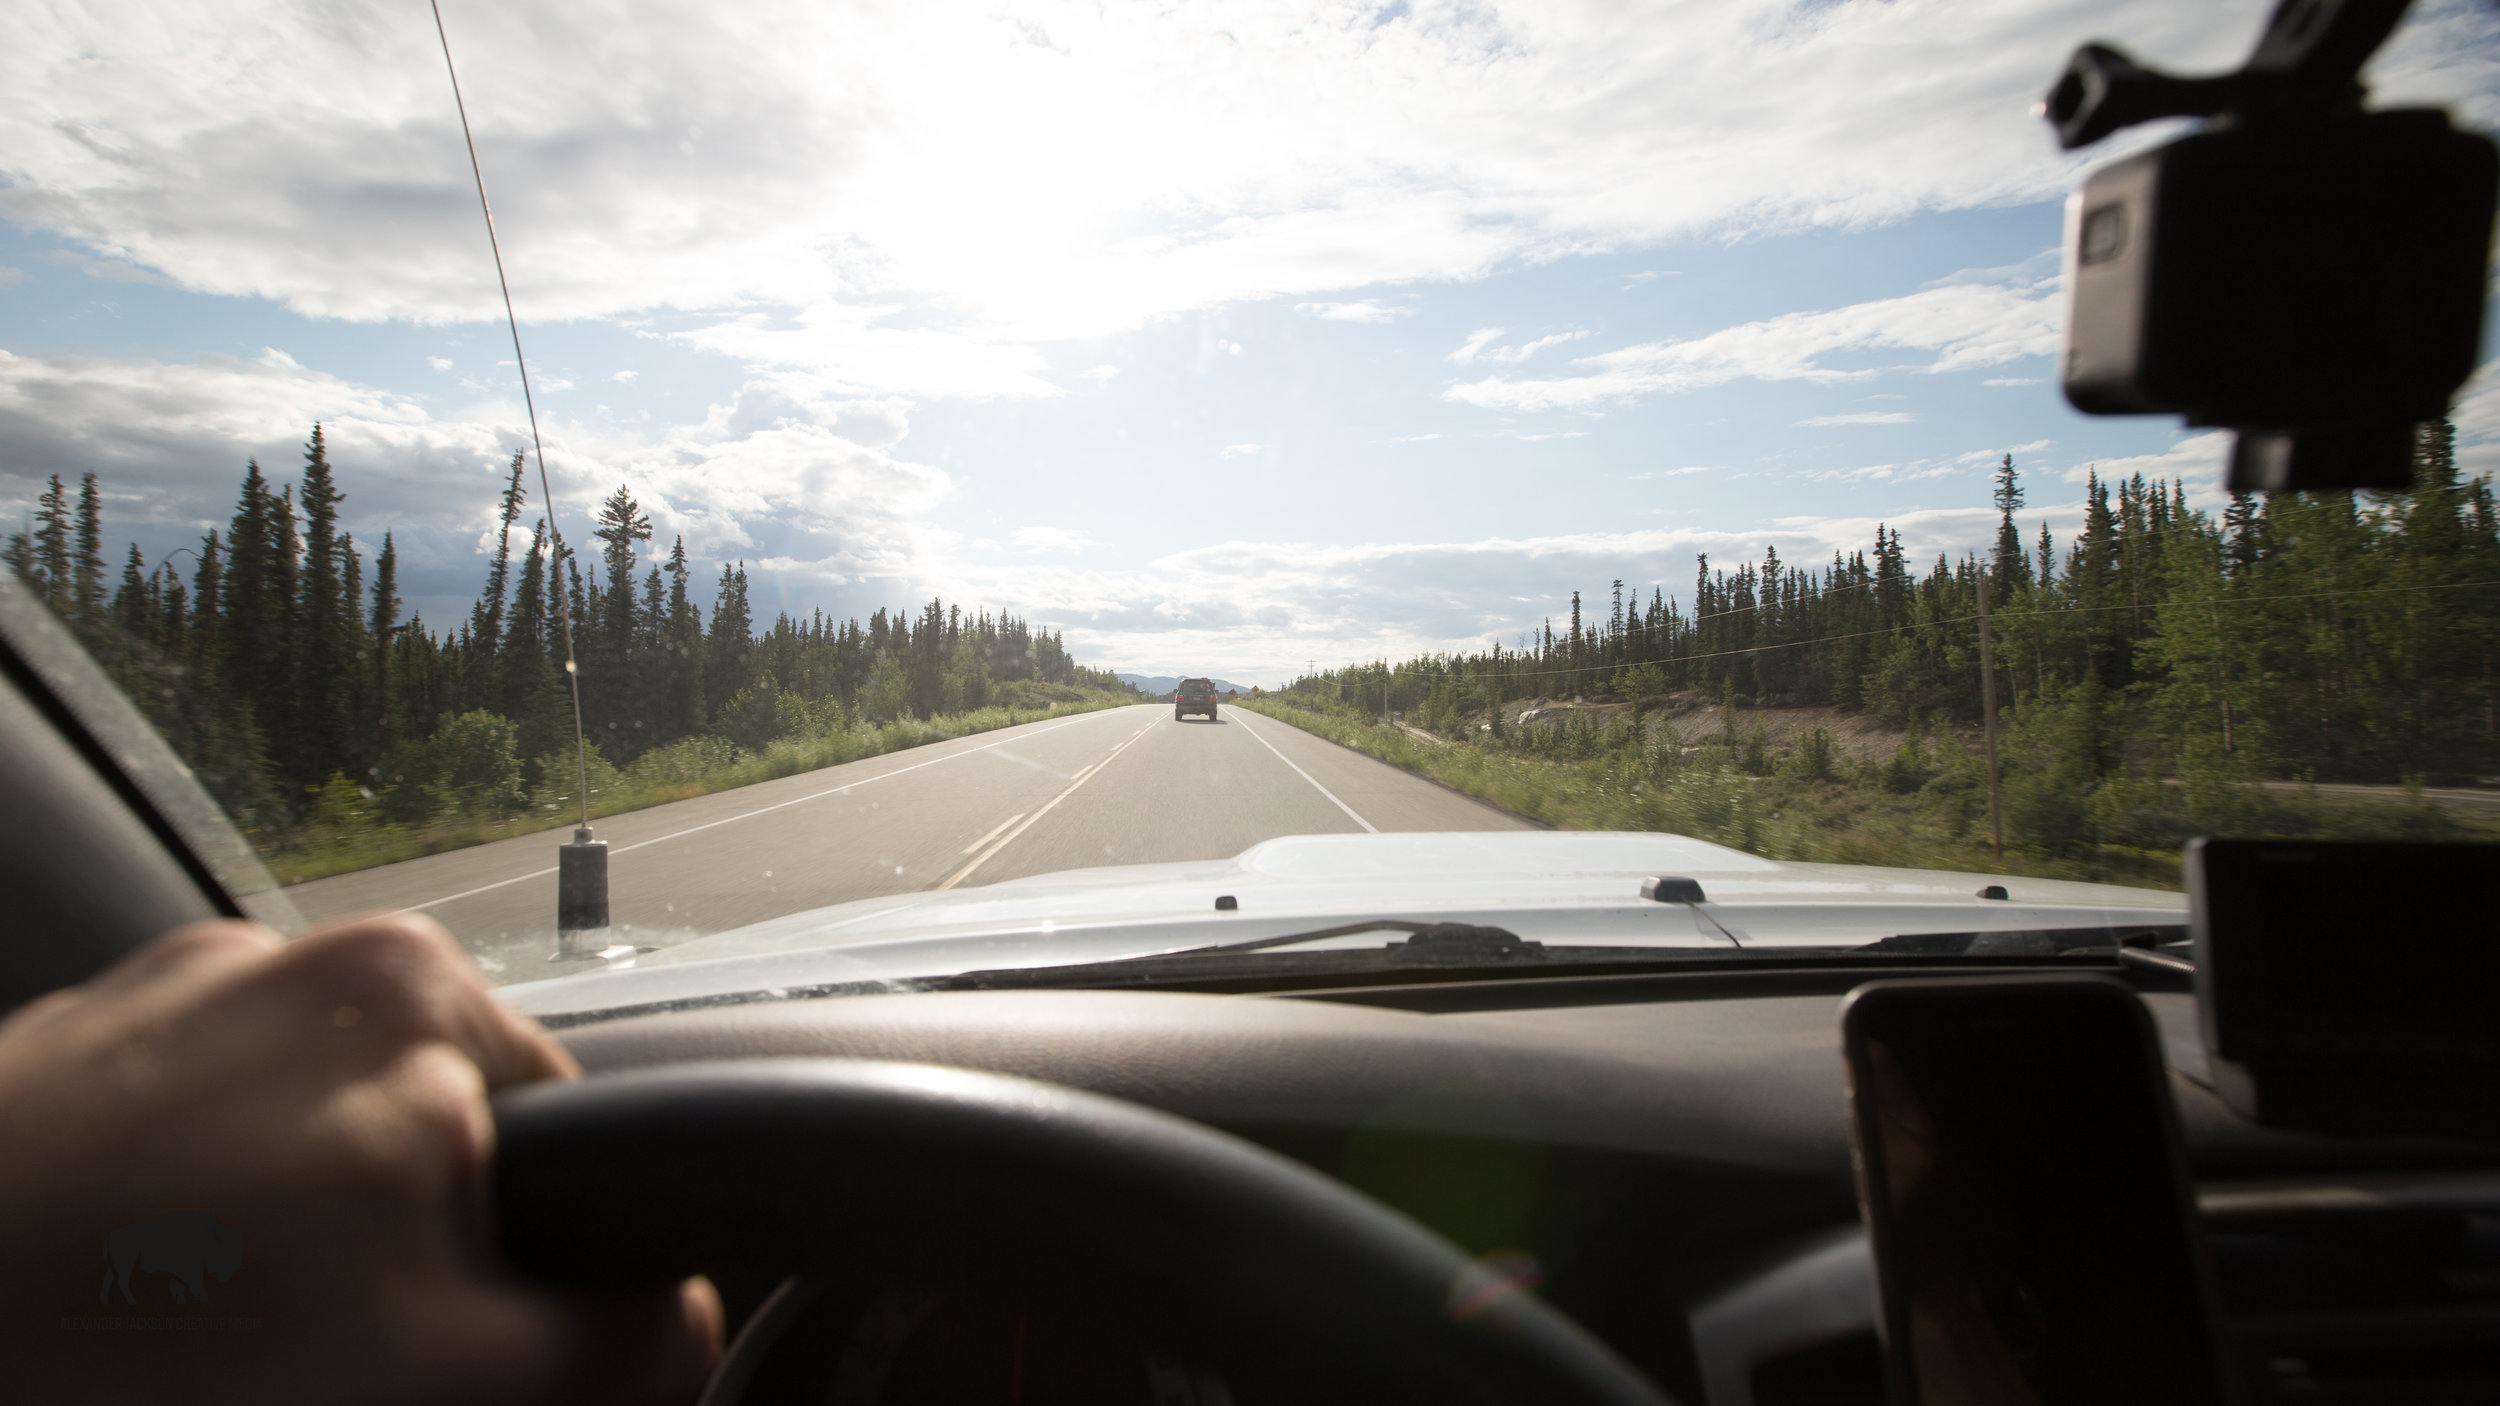 Just before turning onto the old Alaska Highway.